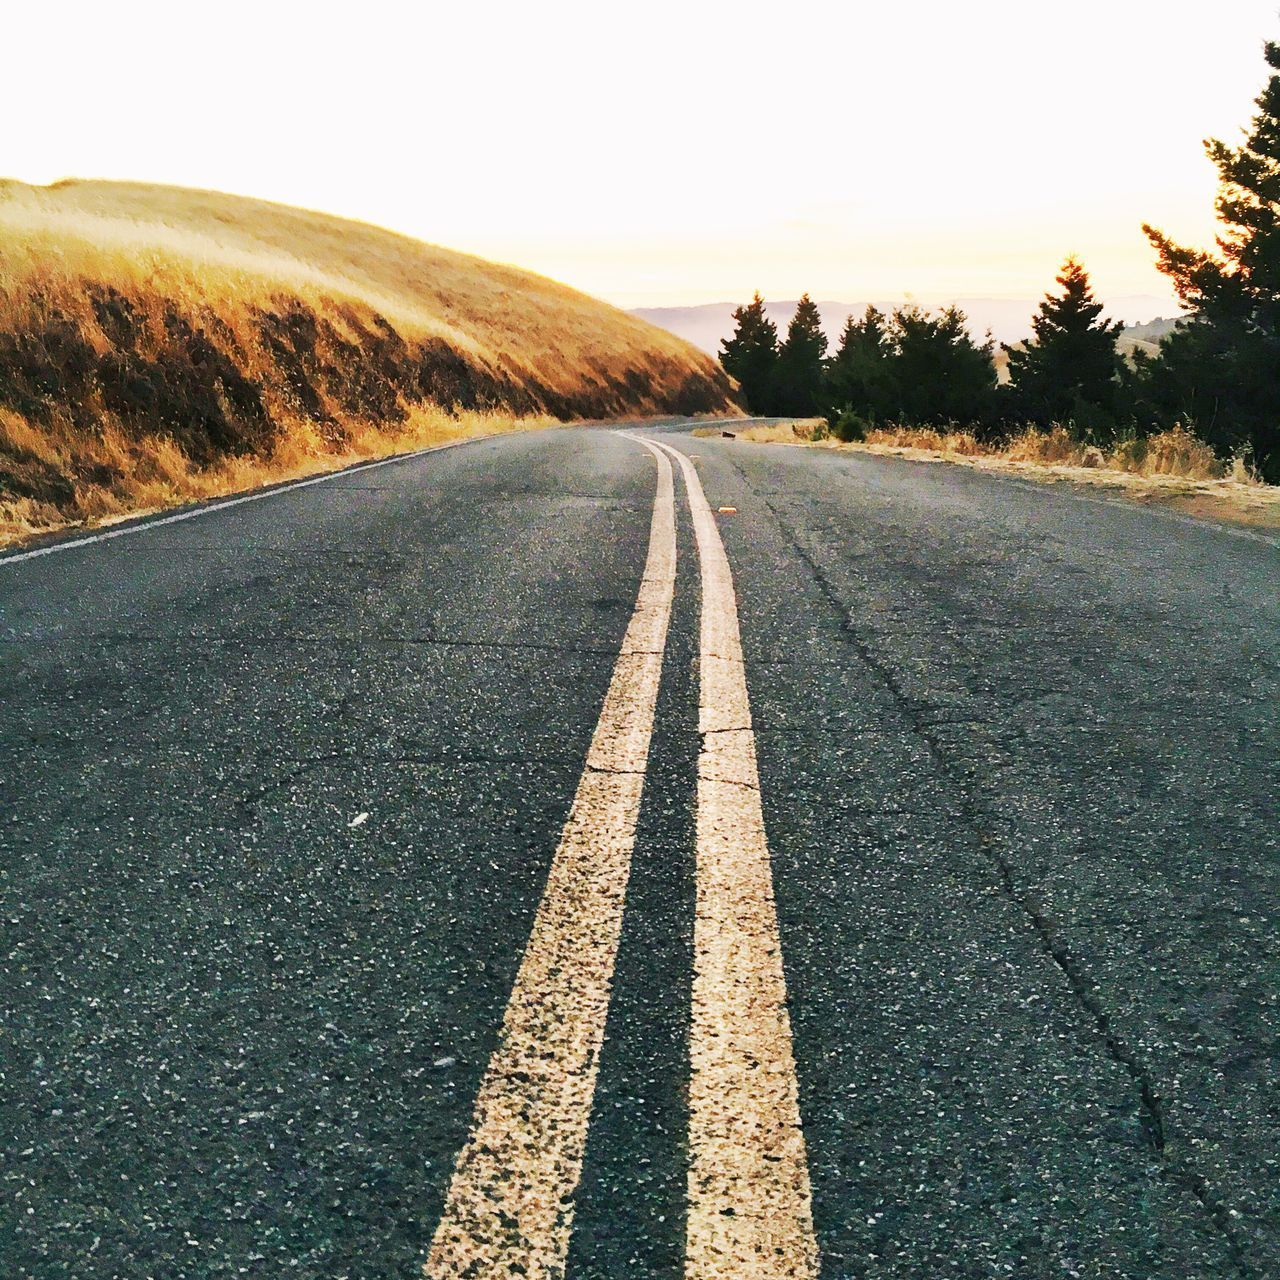 Before getting into the car, I took one last shot of the road. The Way Forward Transportation Road Tree Road Marking Clear Sky Landscape Tranquil Scene Surface Level Diminishing Perspective Outdoors Solitude Countryside Nature Tranquility Vanishing Point Non-urban Scene Day Long Remote